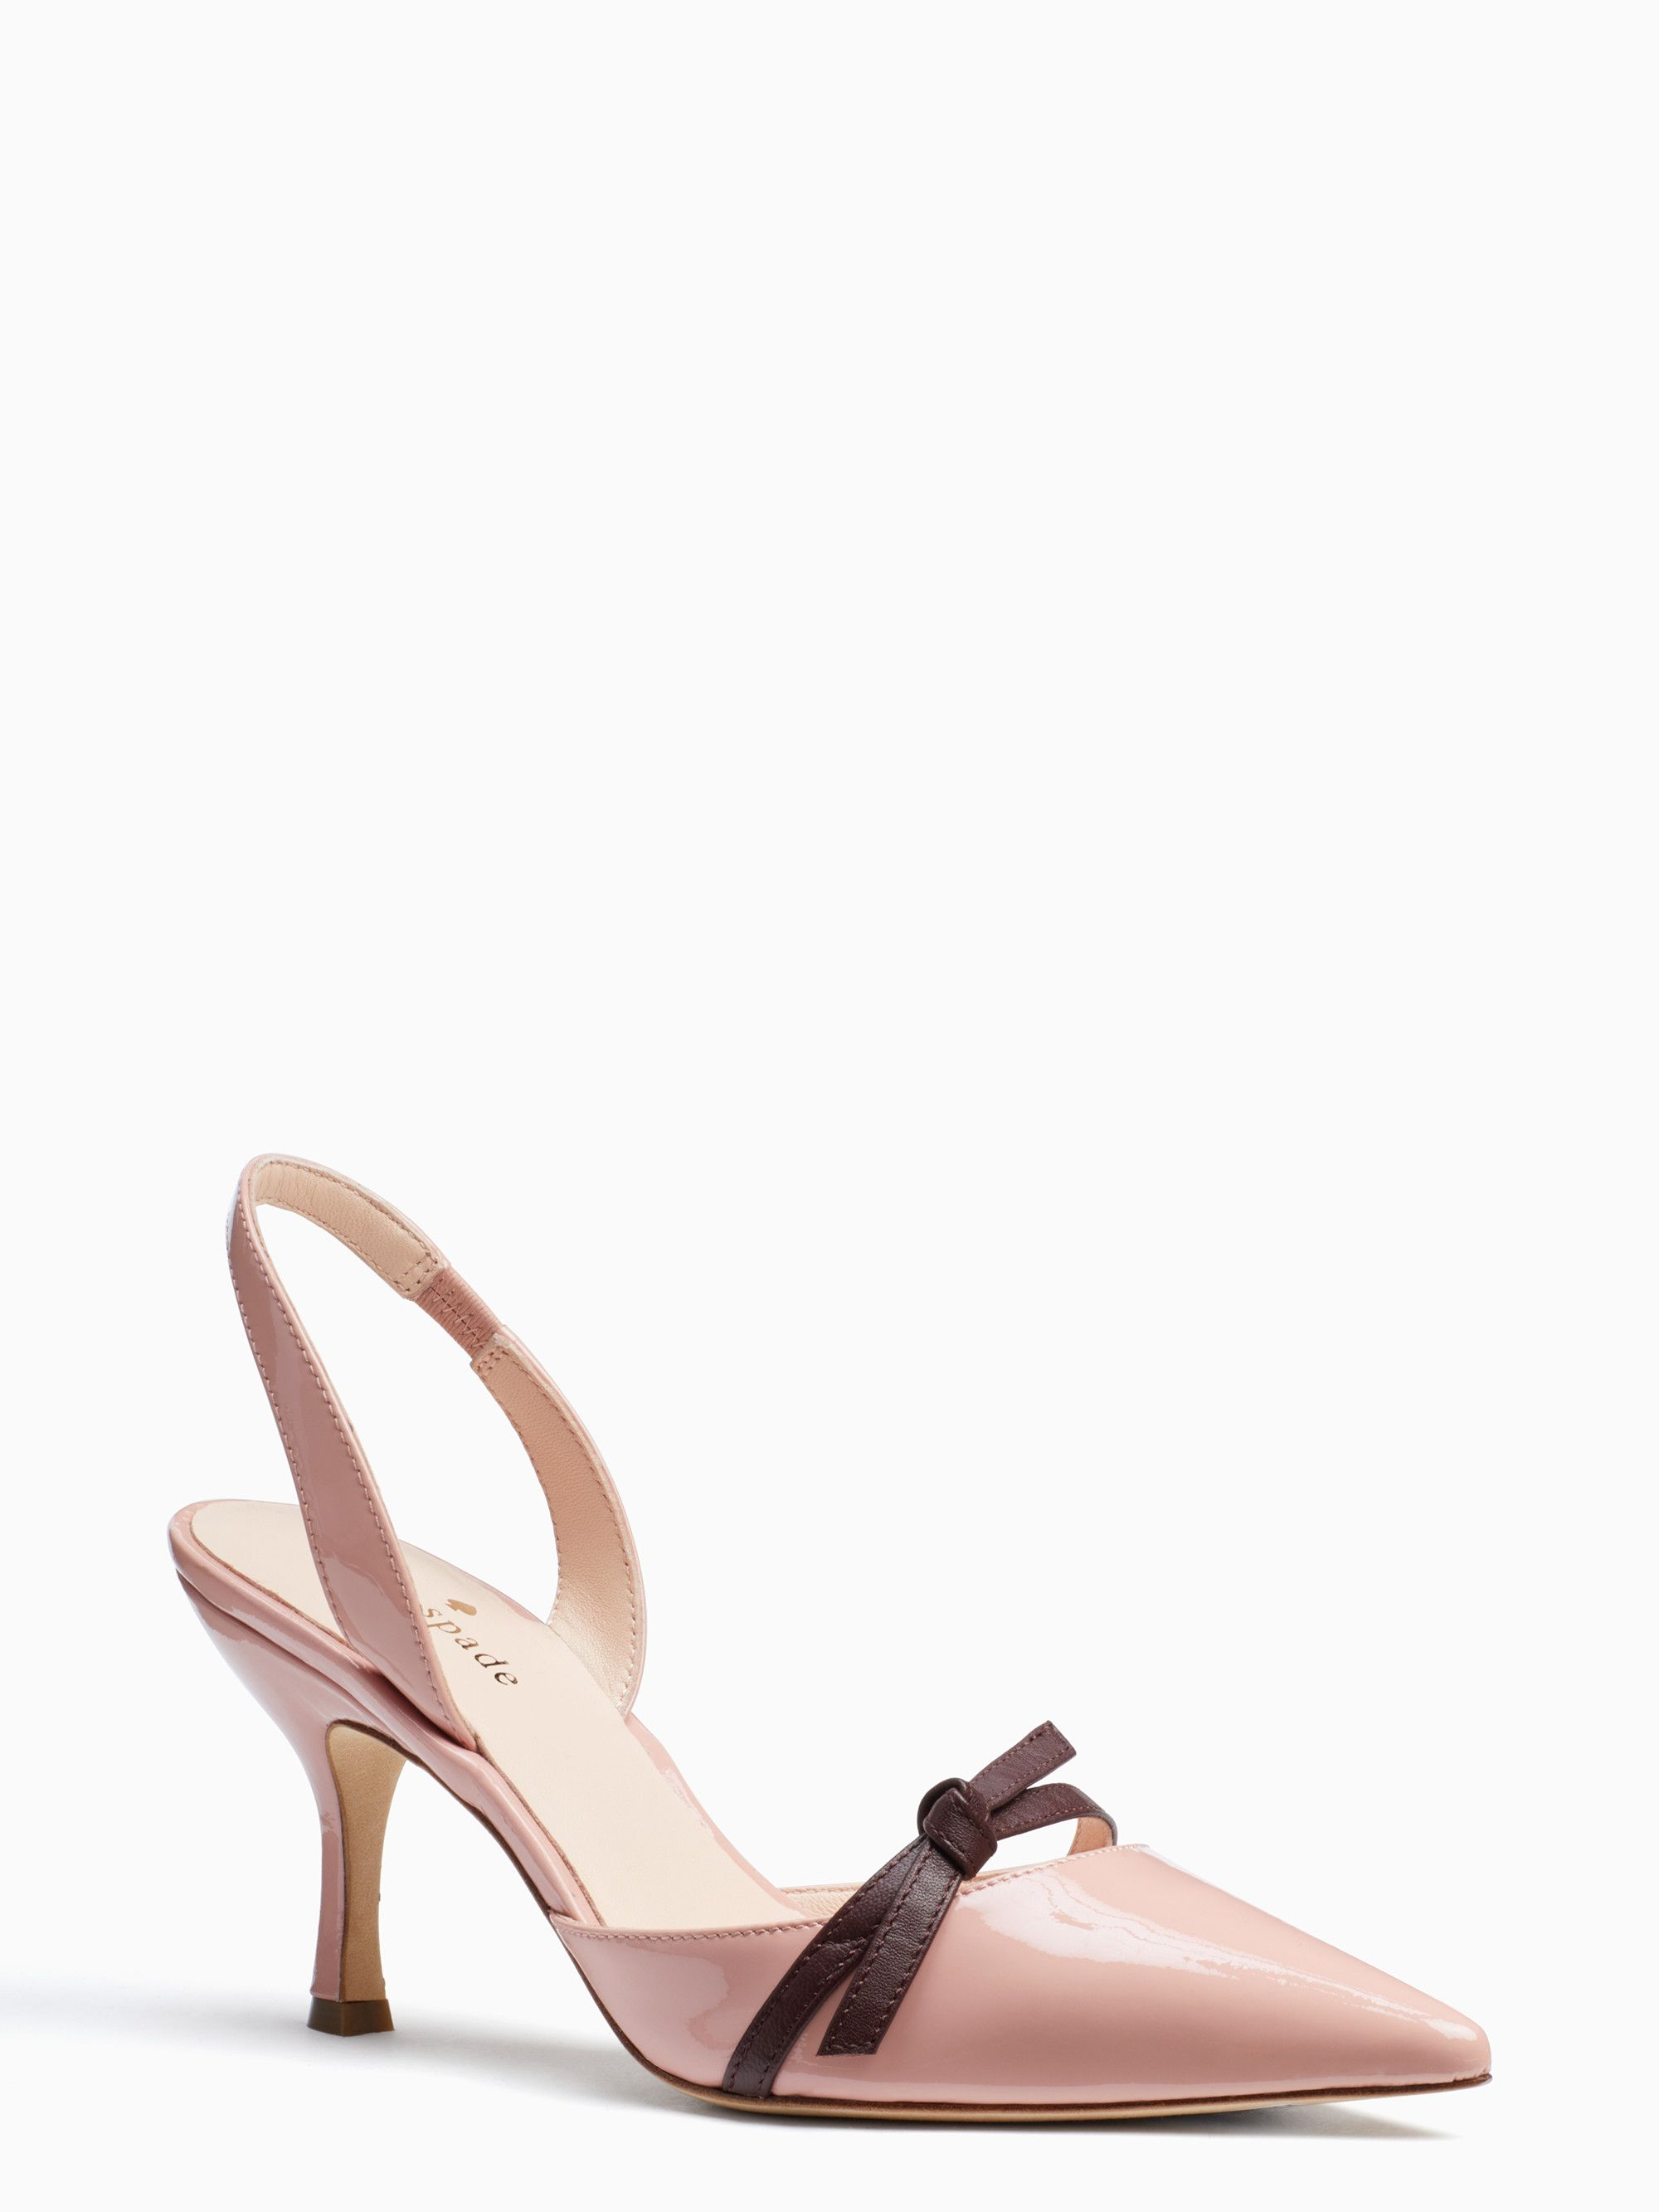 Sibelle Heels From Kate Spade New York Heels Pointed Toe Shoes Crazy Shoes